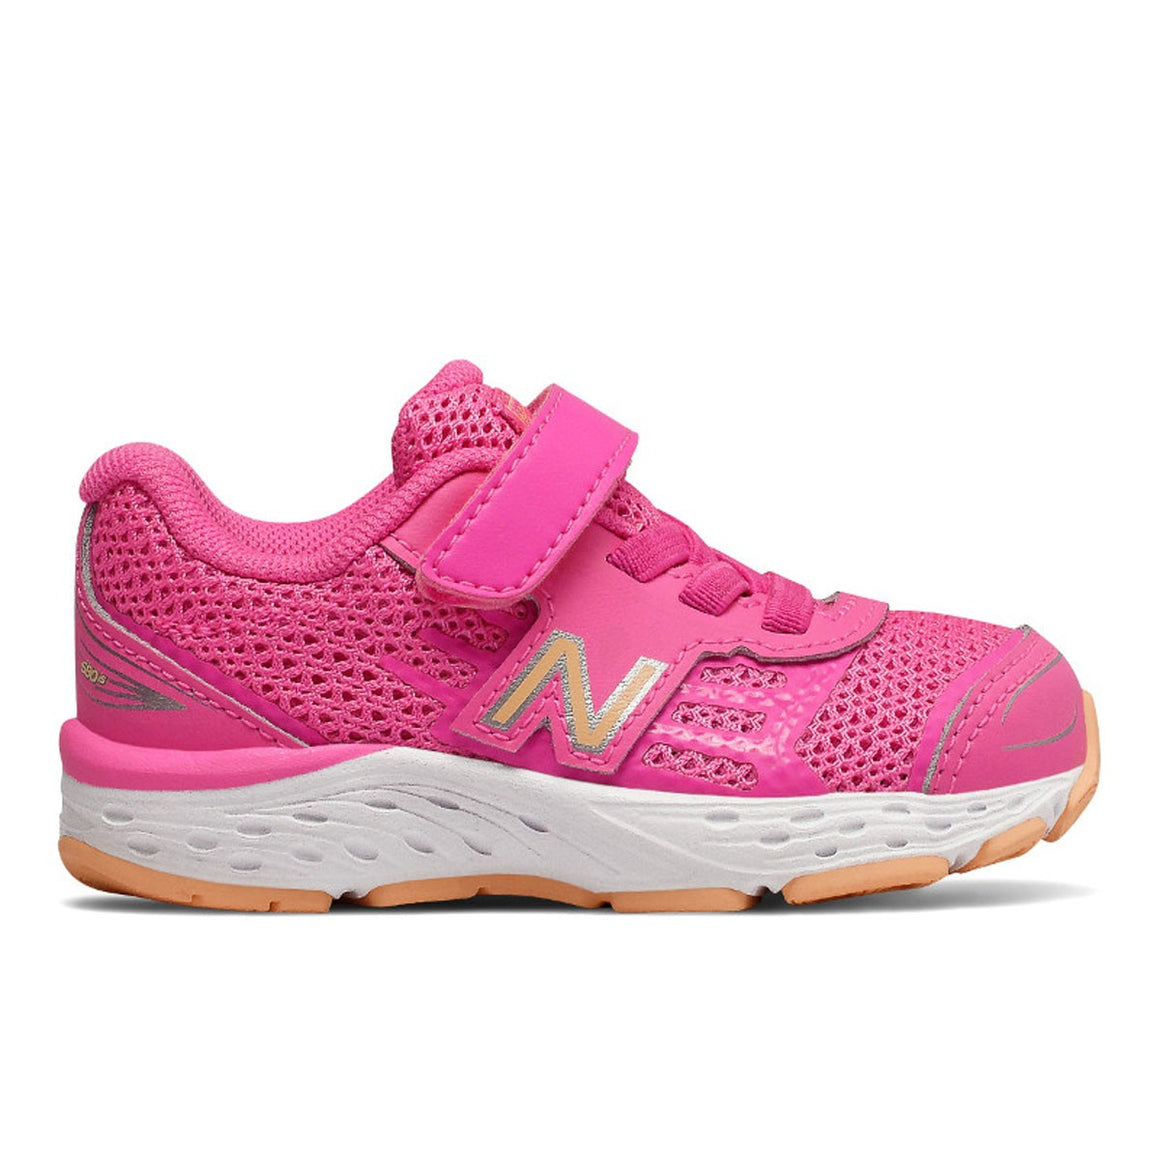 New Balance Infant's 680v5 Tennis Shoe - Pink/Mango IA680MP - ShoeShackOnline